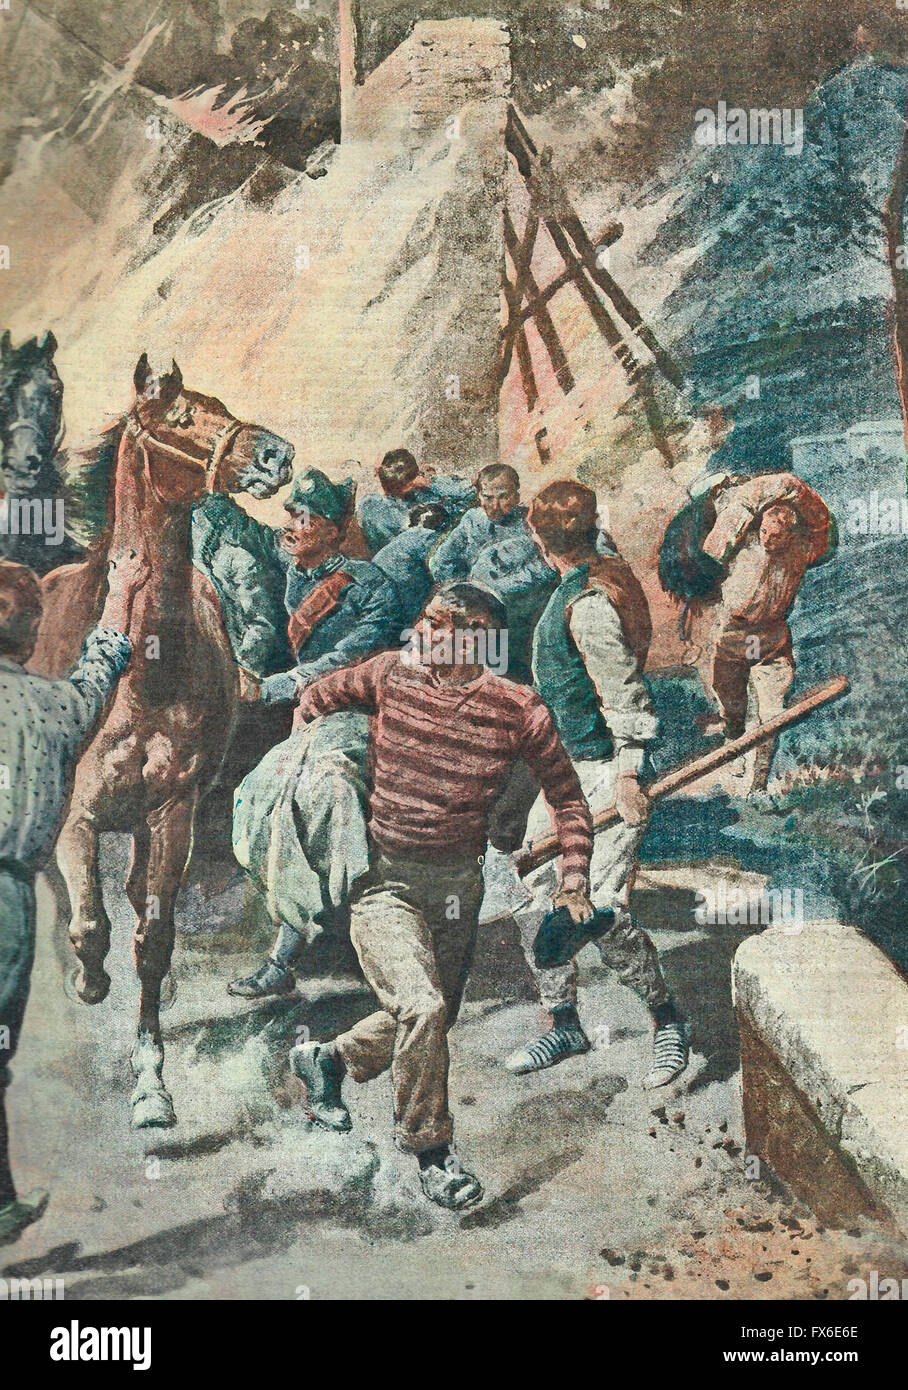 A criminal attack against the Ferrarese unions  and free workers  1913 - Stock Image